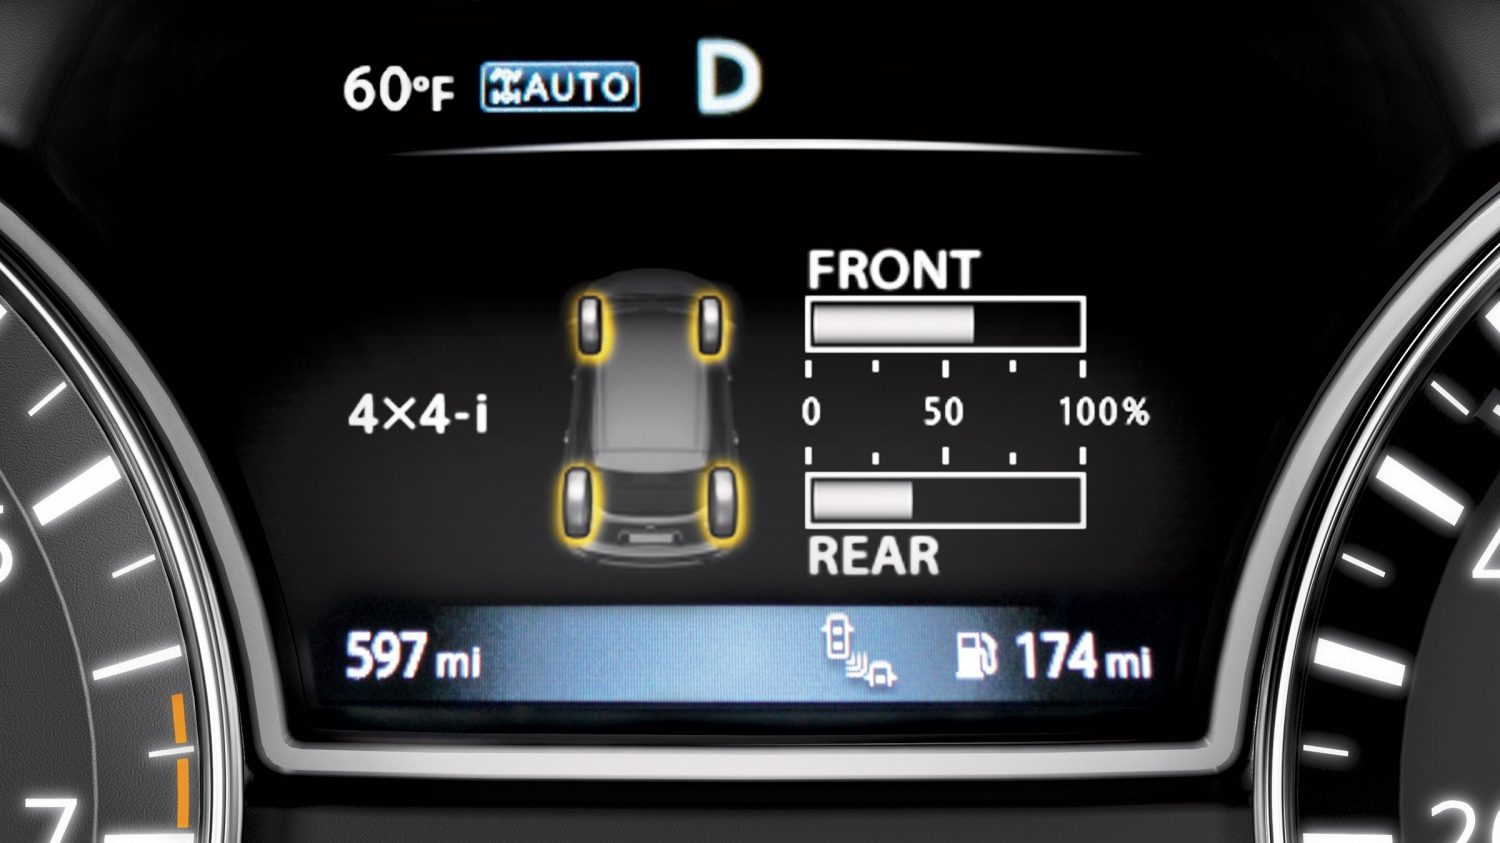 Pantalla Advanced Drive-Assist de Nissan Pathfinder